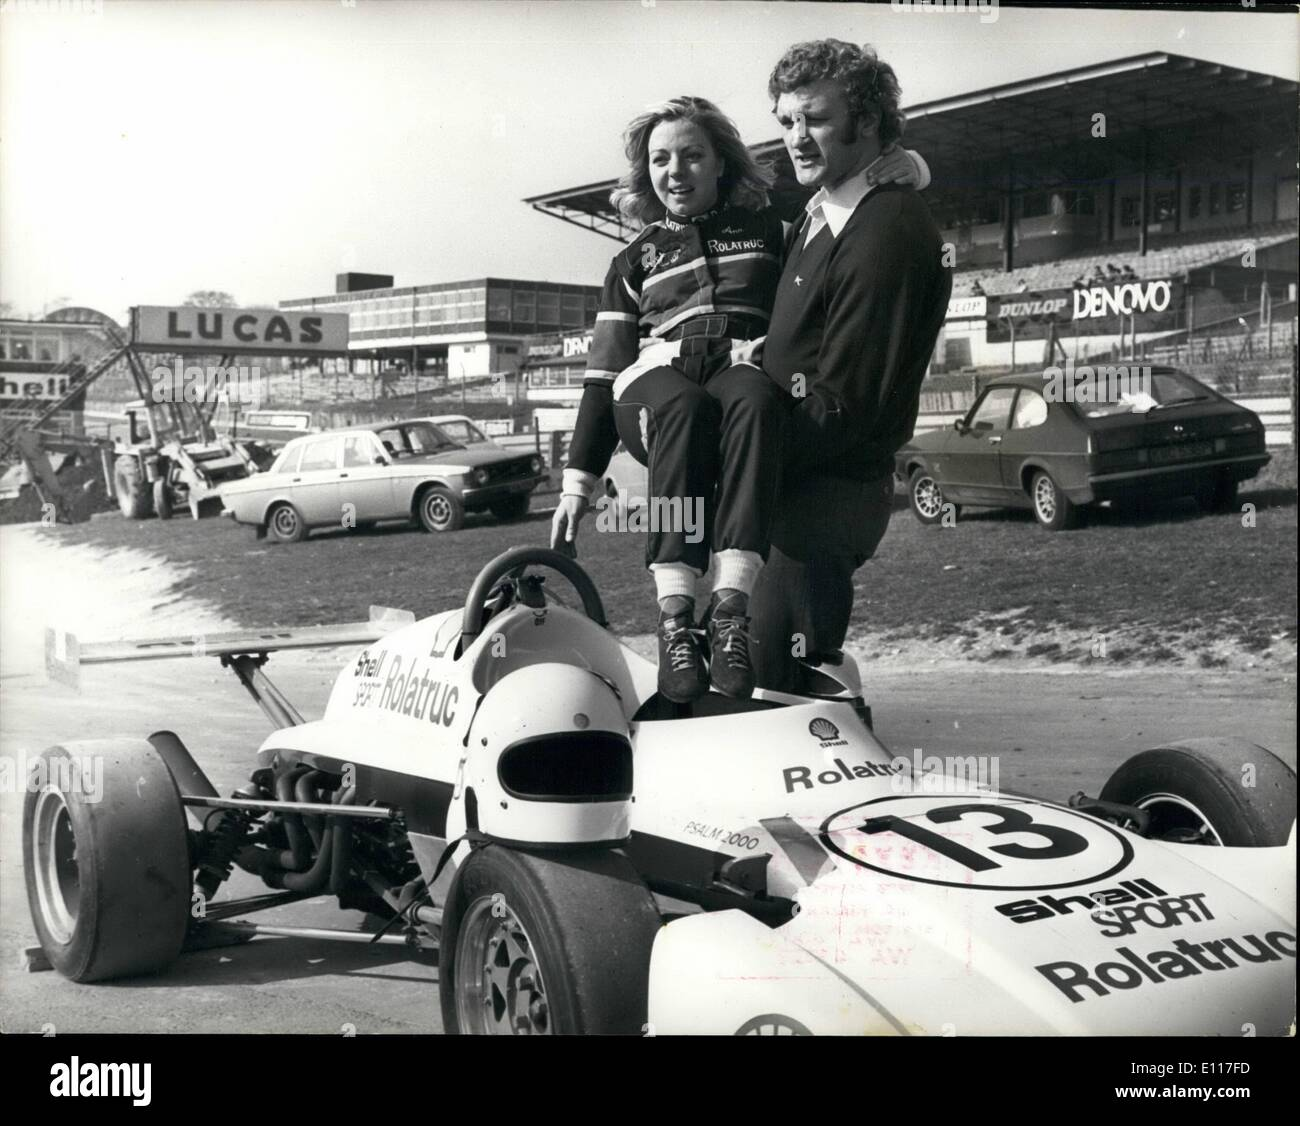 Mar. 03, 1976 - Anne Moore and Joe Bugner practice at Brands Hatch: Joe Bugner was among many Olympic and International sports stars who were today to Brands Hatch practicing for next weeks race in aid of the sportsmans charity Starks. Champion Show Jumper Anne Moore who was turned her hand to professional motor racing and will be driving a single seater Elden Ford 2000 in about 30 races this season, was there to give a few words of advice to Joe. Photo shows Anne Moore is helped into her car by Joe Bugner. - Stock Image